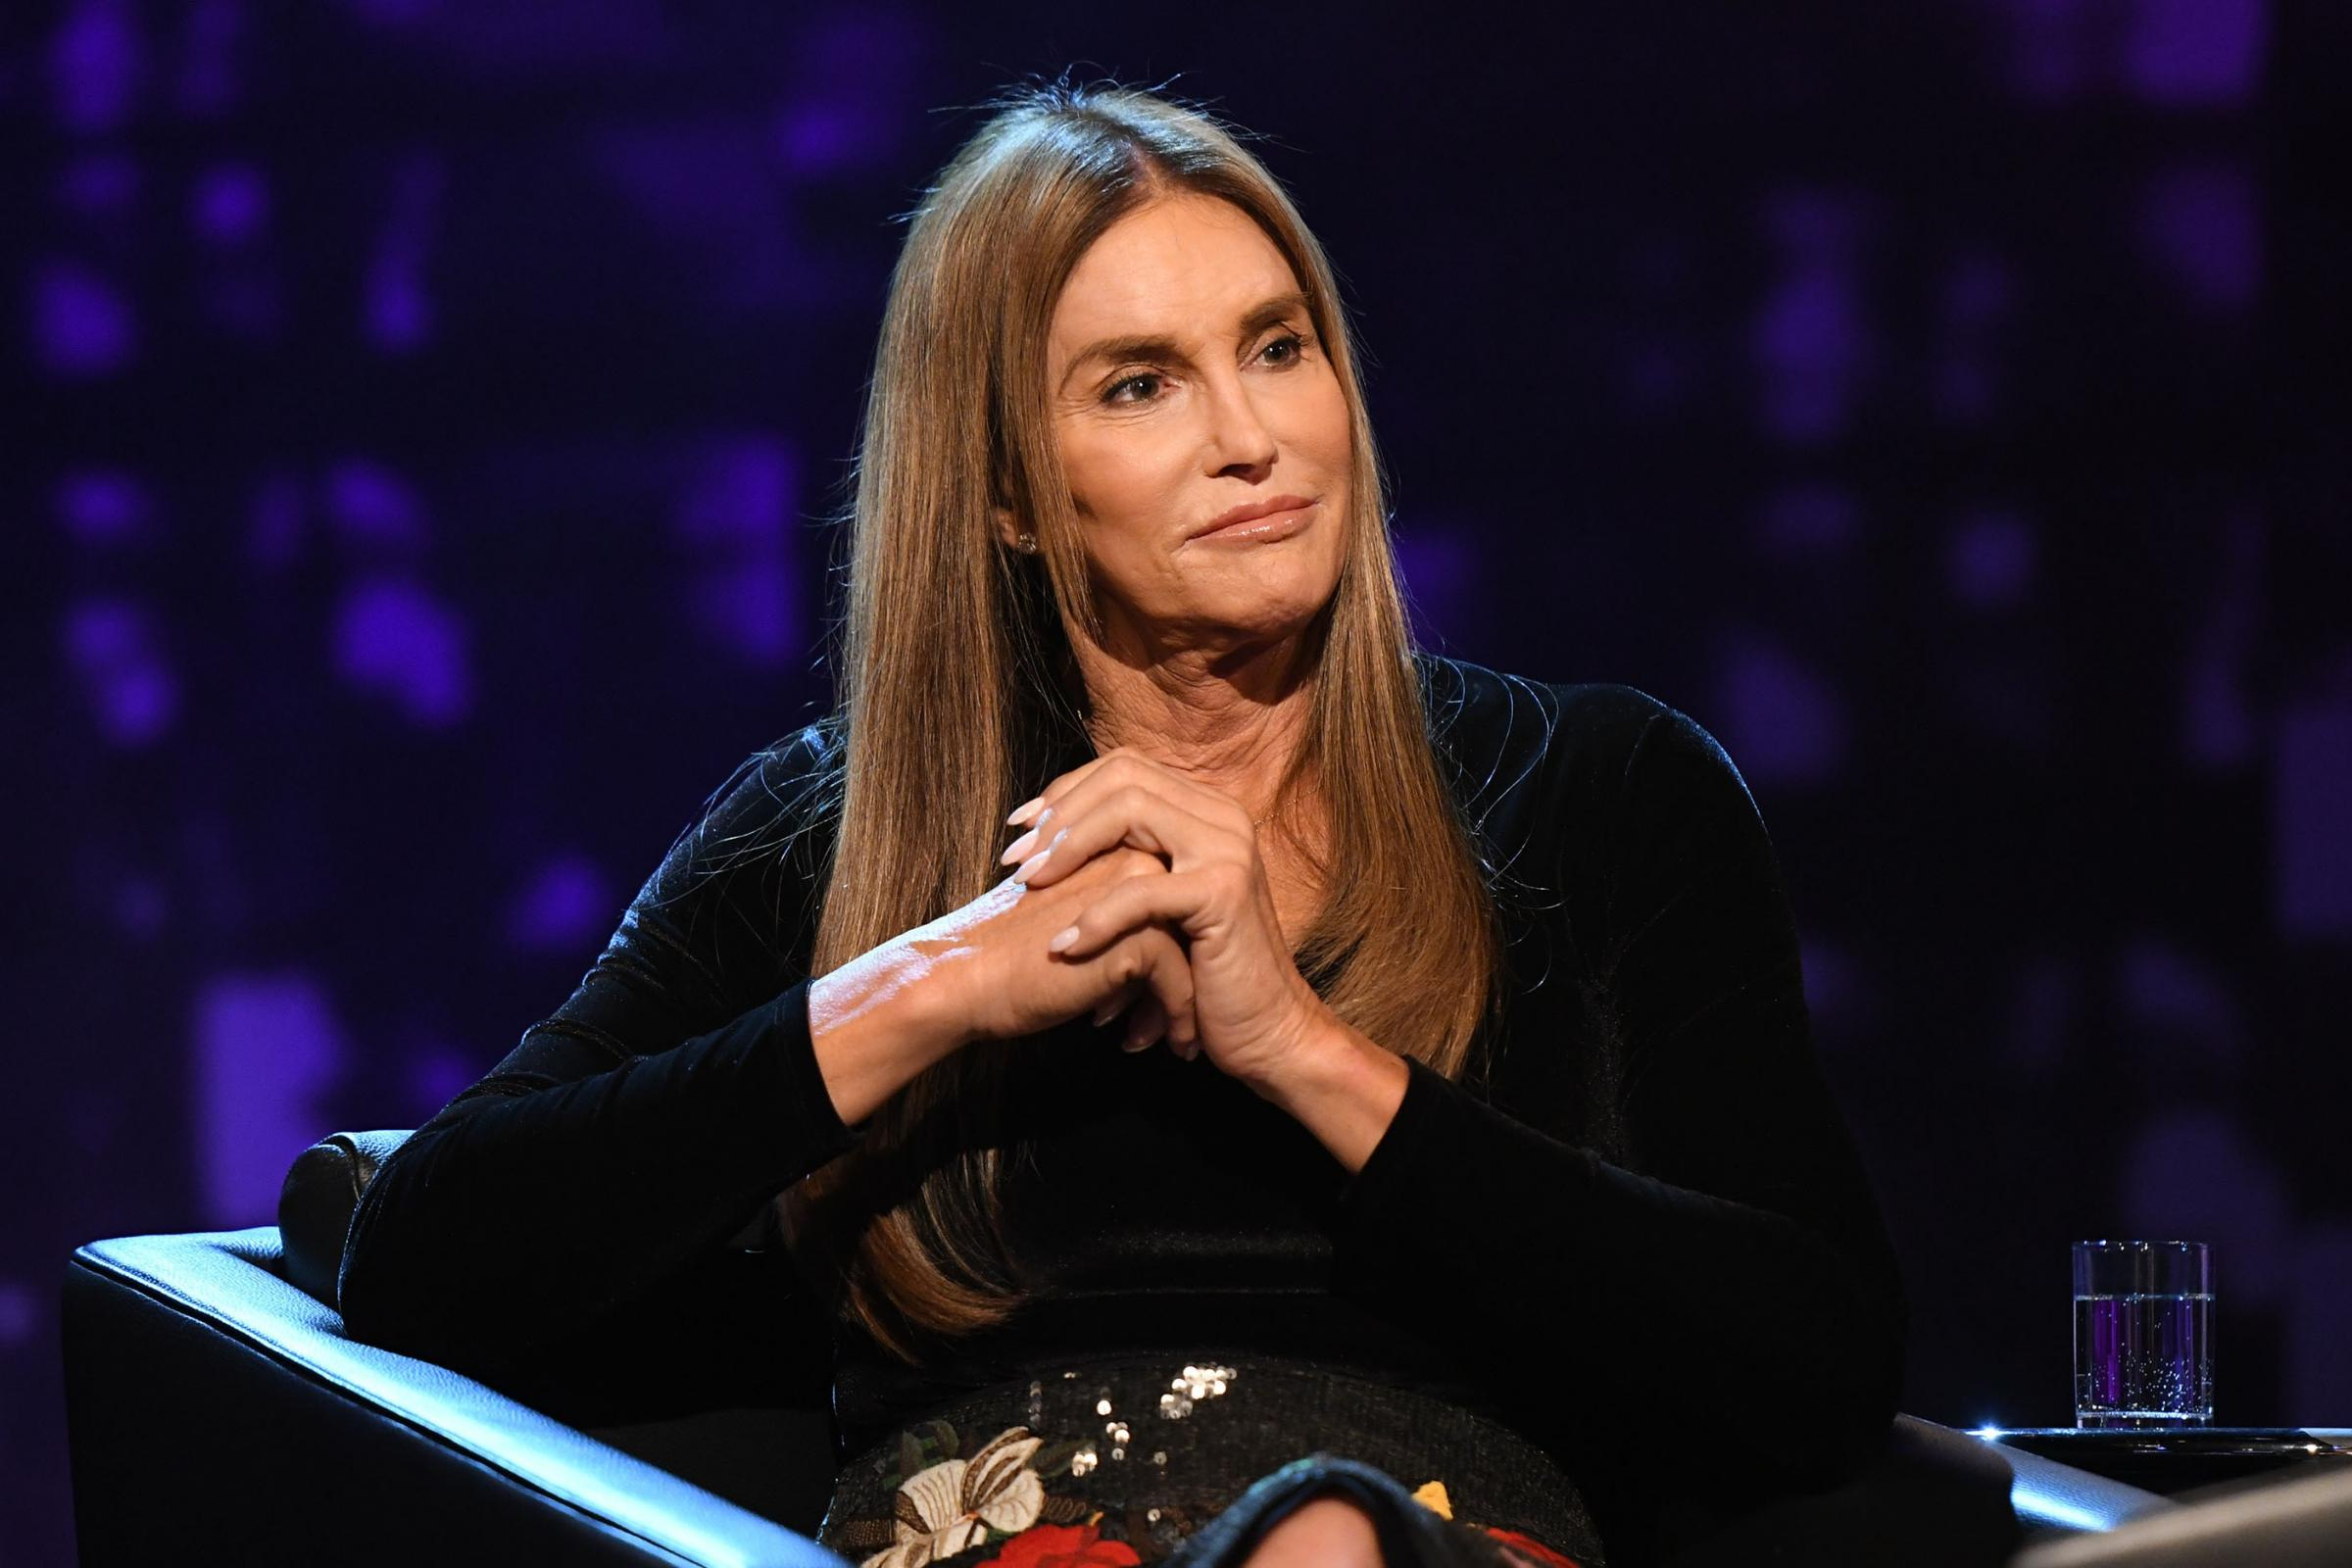 Caitlyn Jenner on the Kardashians: My gender surgery was none of their business (ITV)